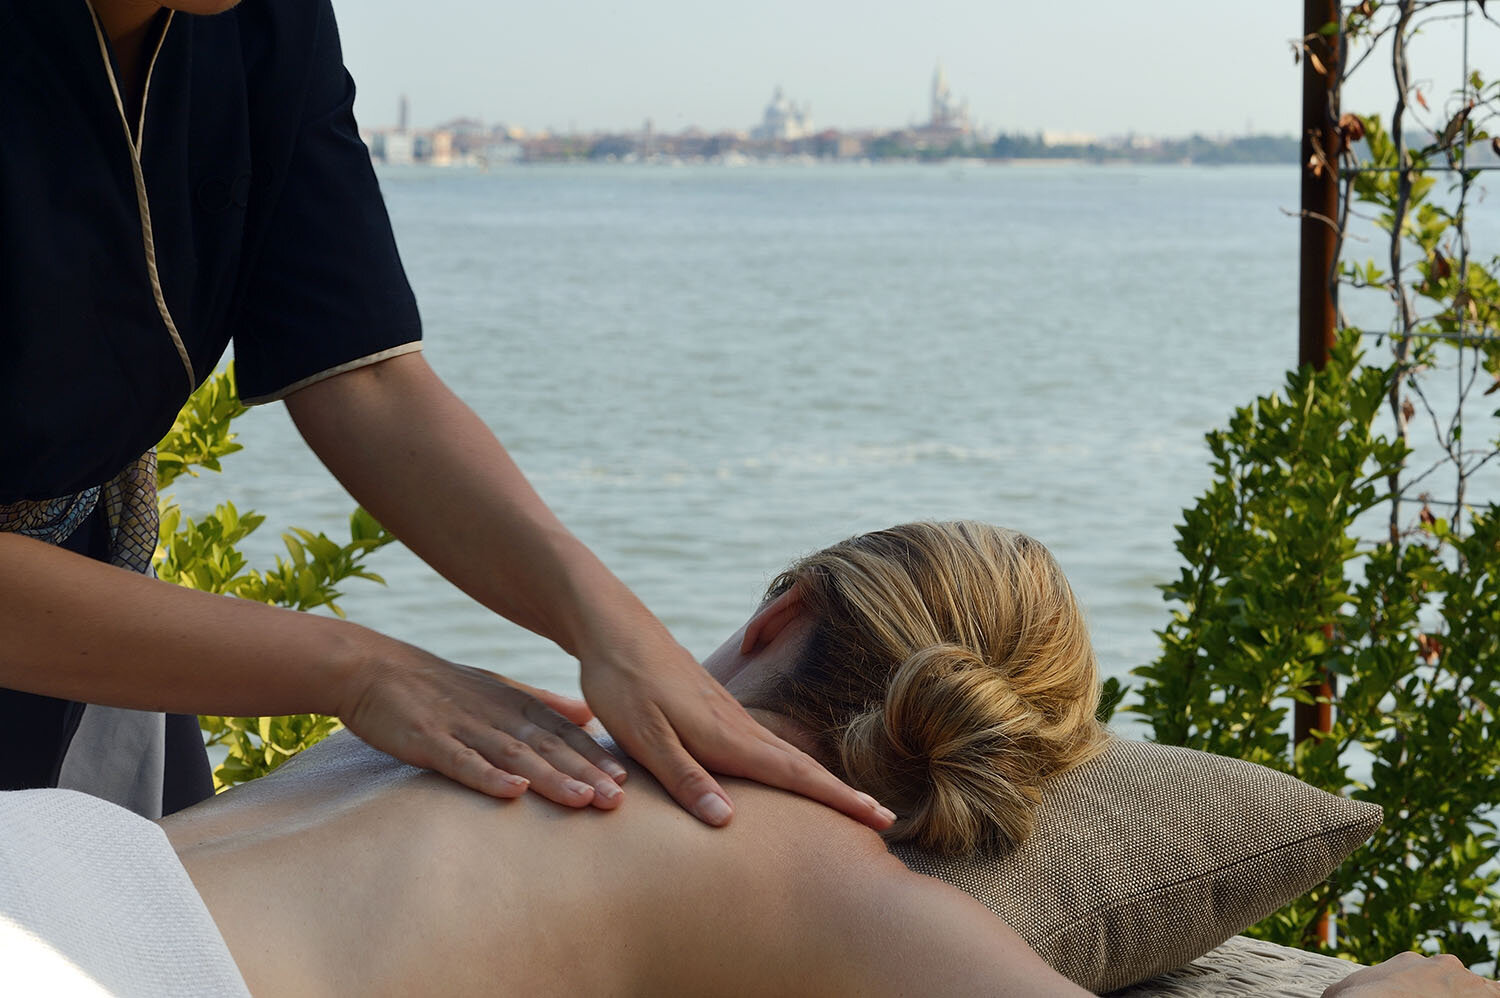 Guests of the spa can enjoy the Olive Oil Treatment, which uses oil oil for a nourishing and radiant glow.